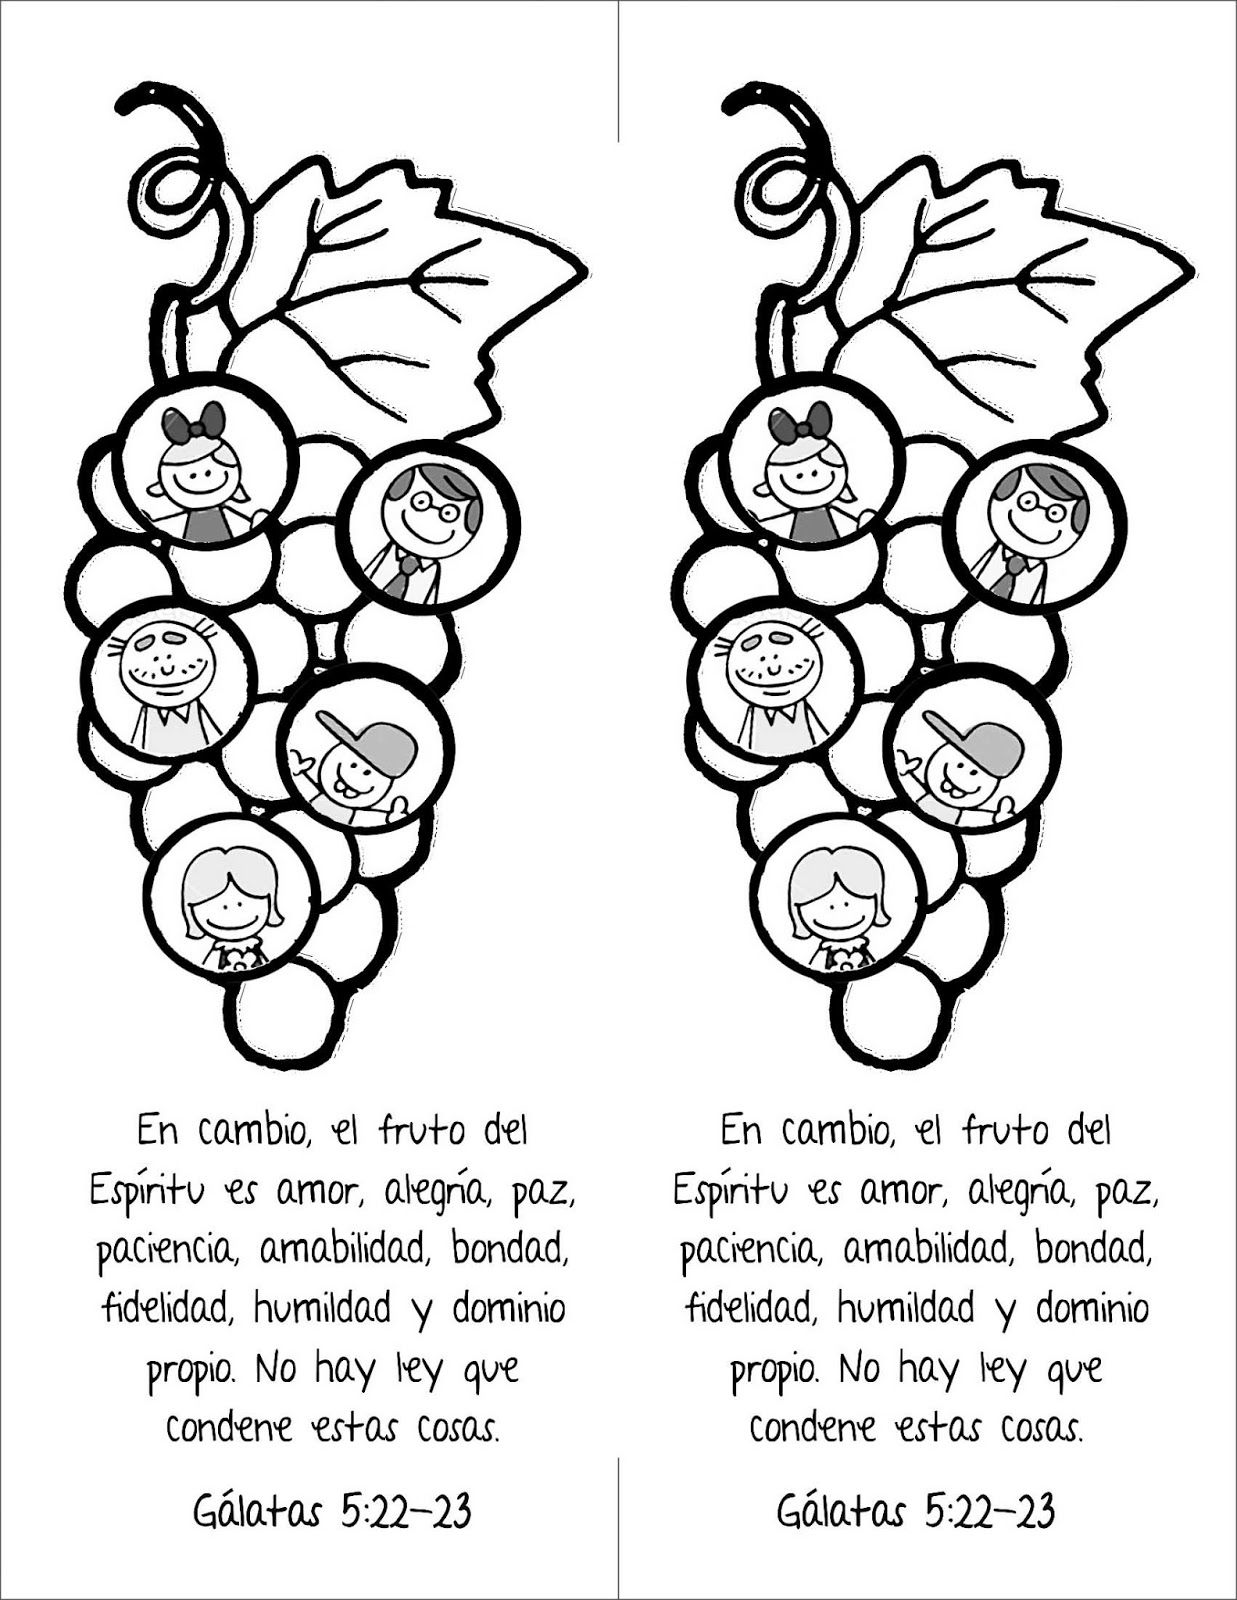 Biblia Ideas: Frutos de Espiritu Santo | Catequesis | Pinterest ...